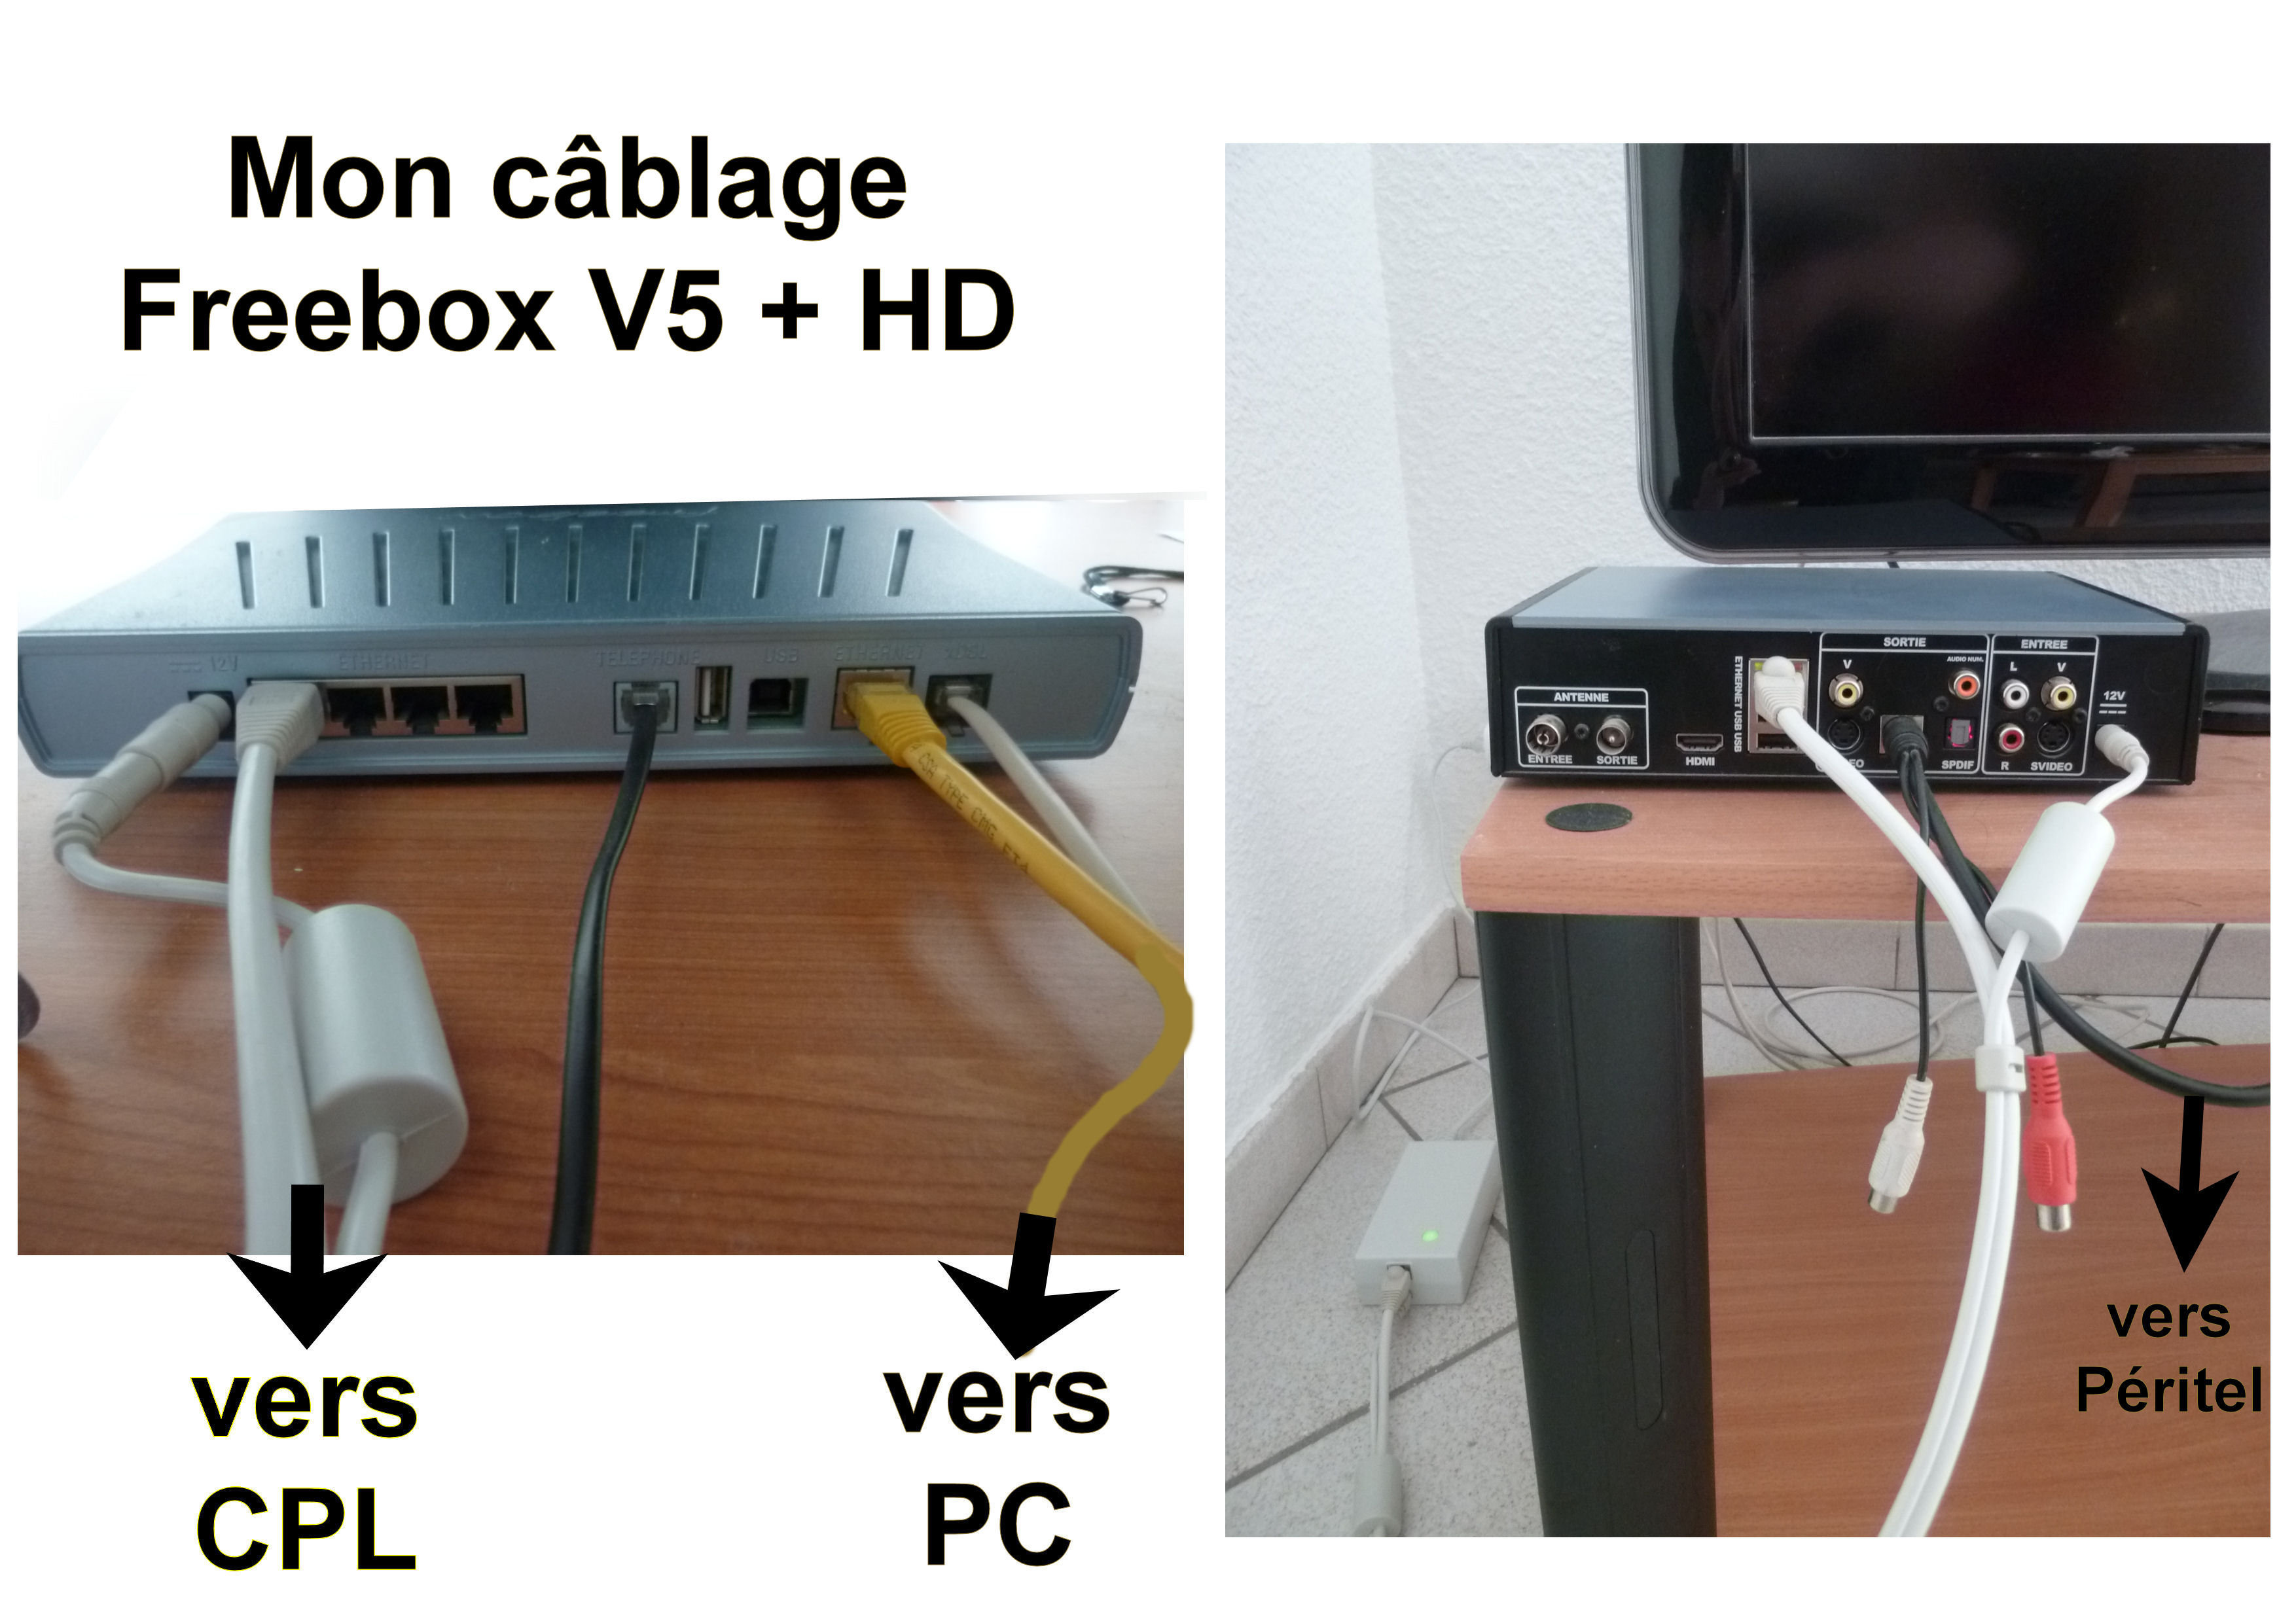 Freebox hd vers pc pour internet la t l vision freebox for Alarme maison freebox